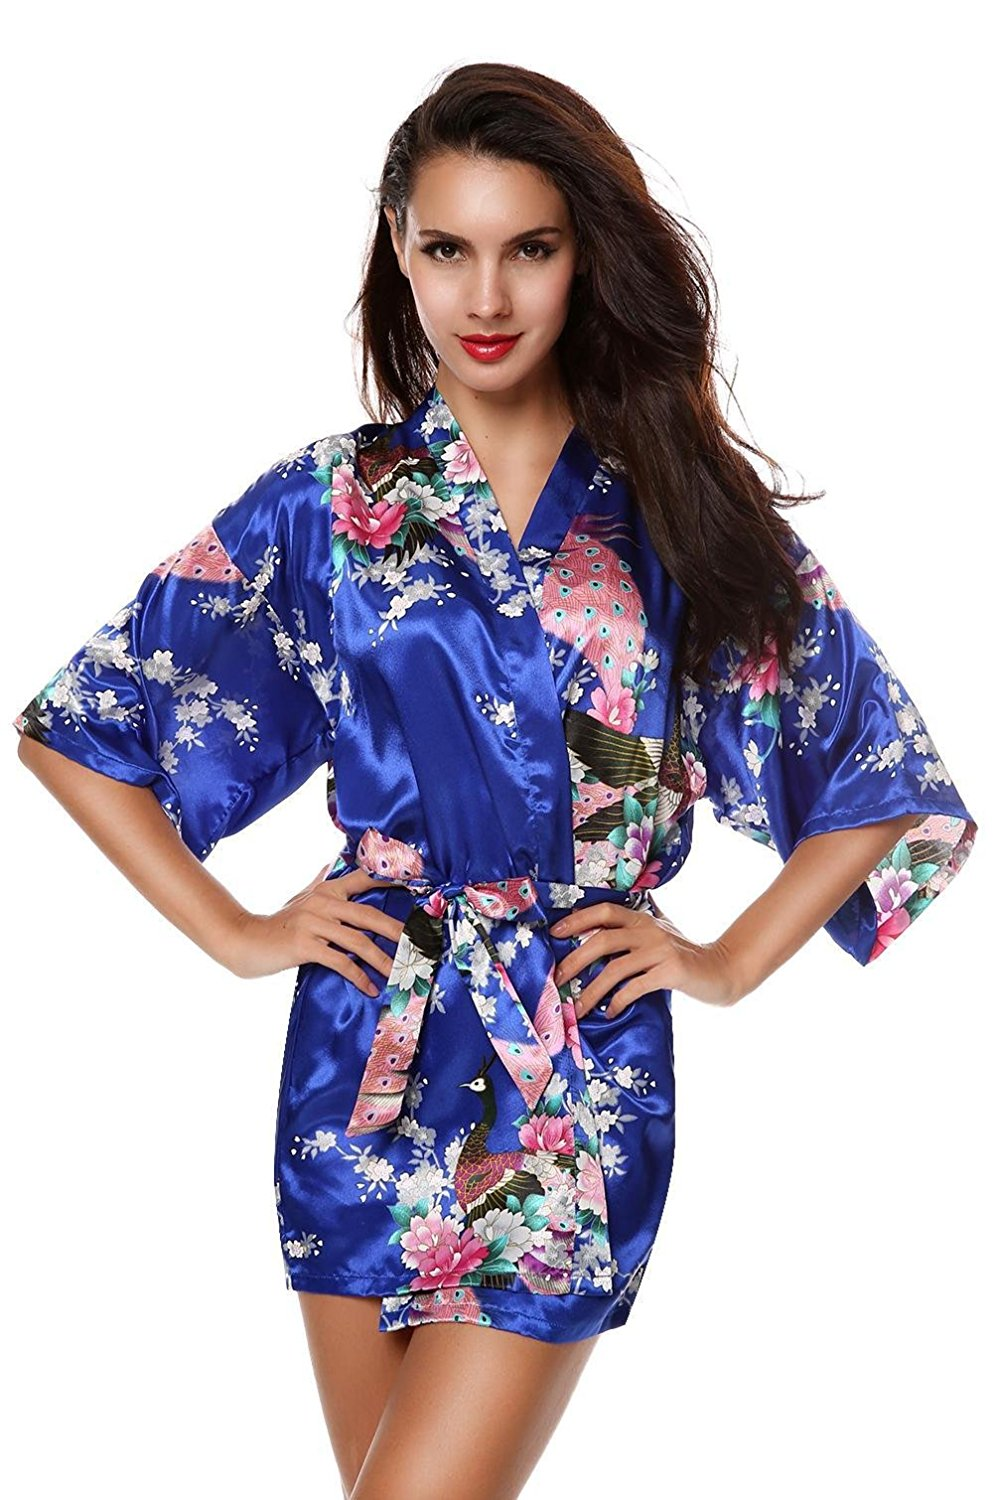 Get Quotations · cindere Robes Loose Robes Nightwear Robes Pajama Robes  Sleepwear Robes Women Robes Robes 3e3f3c350